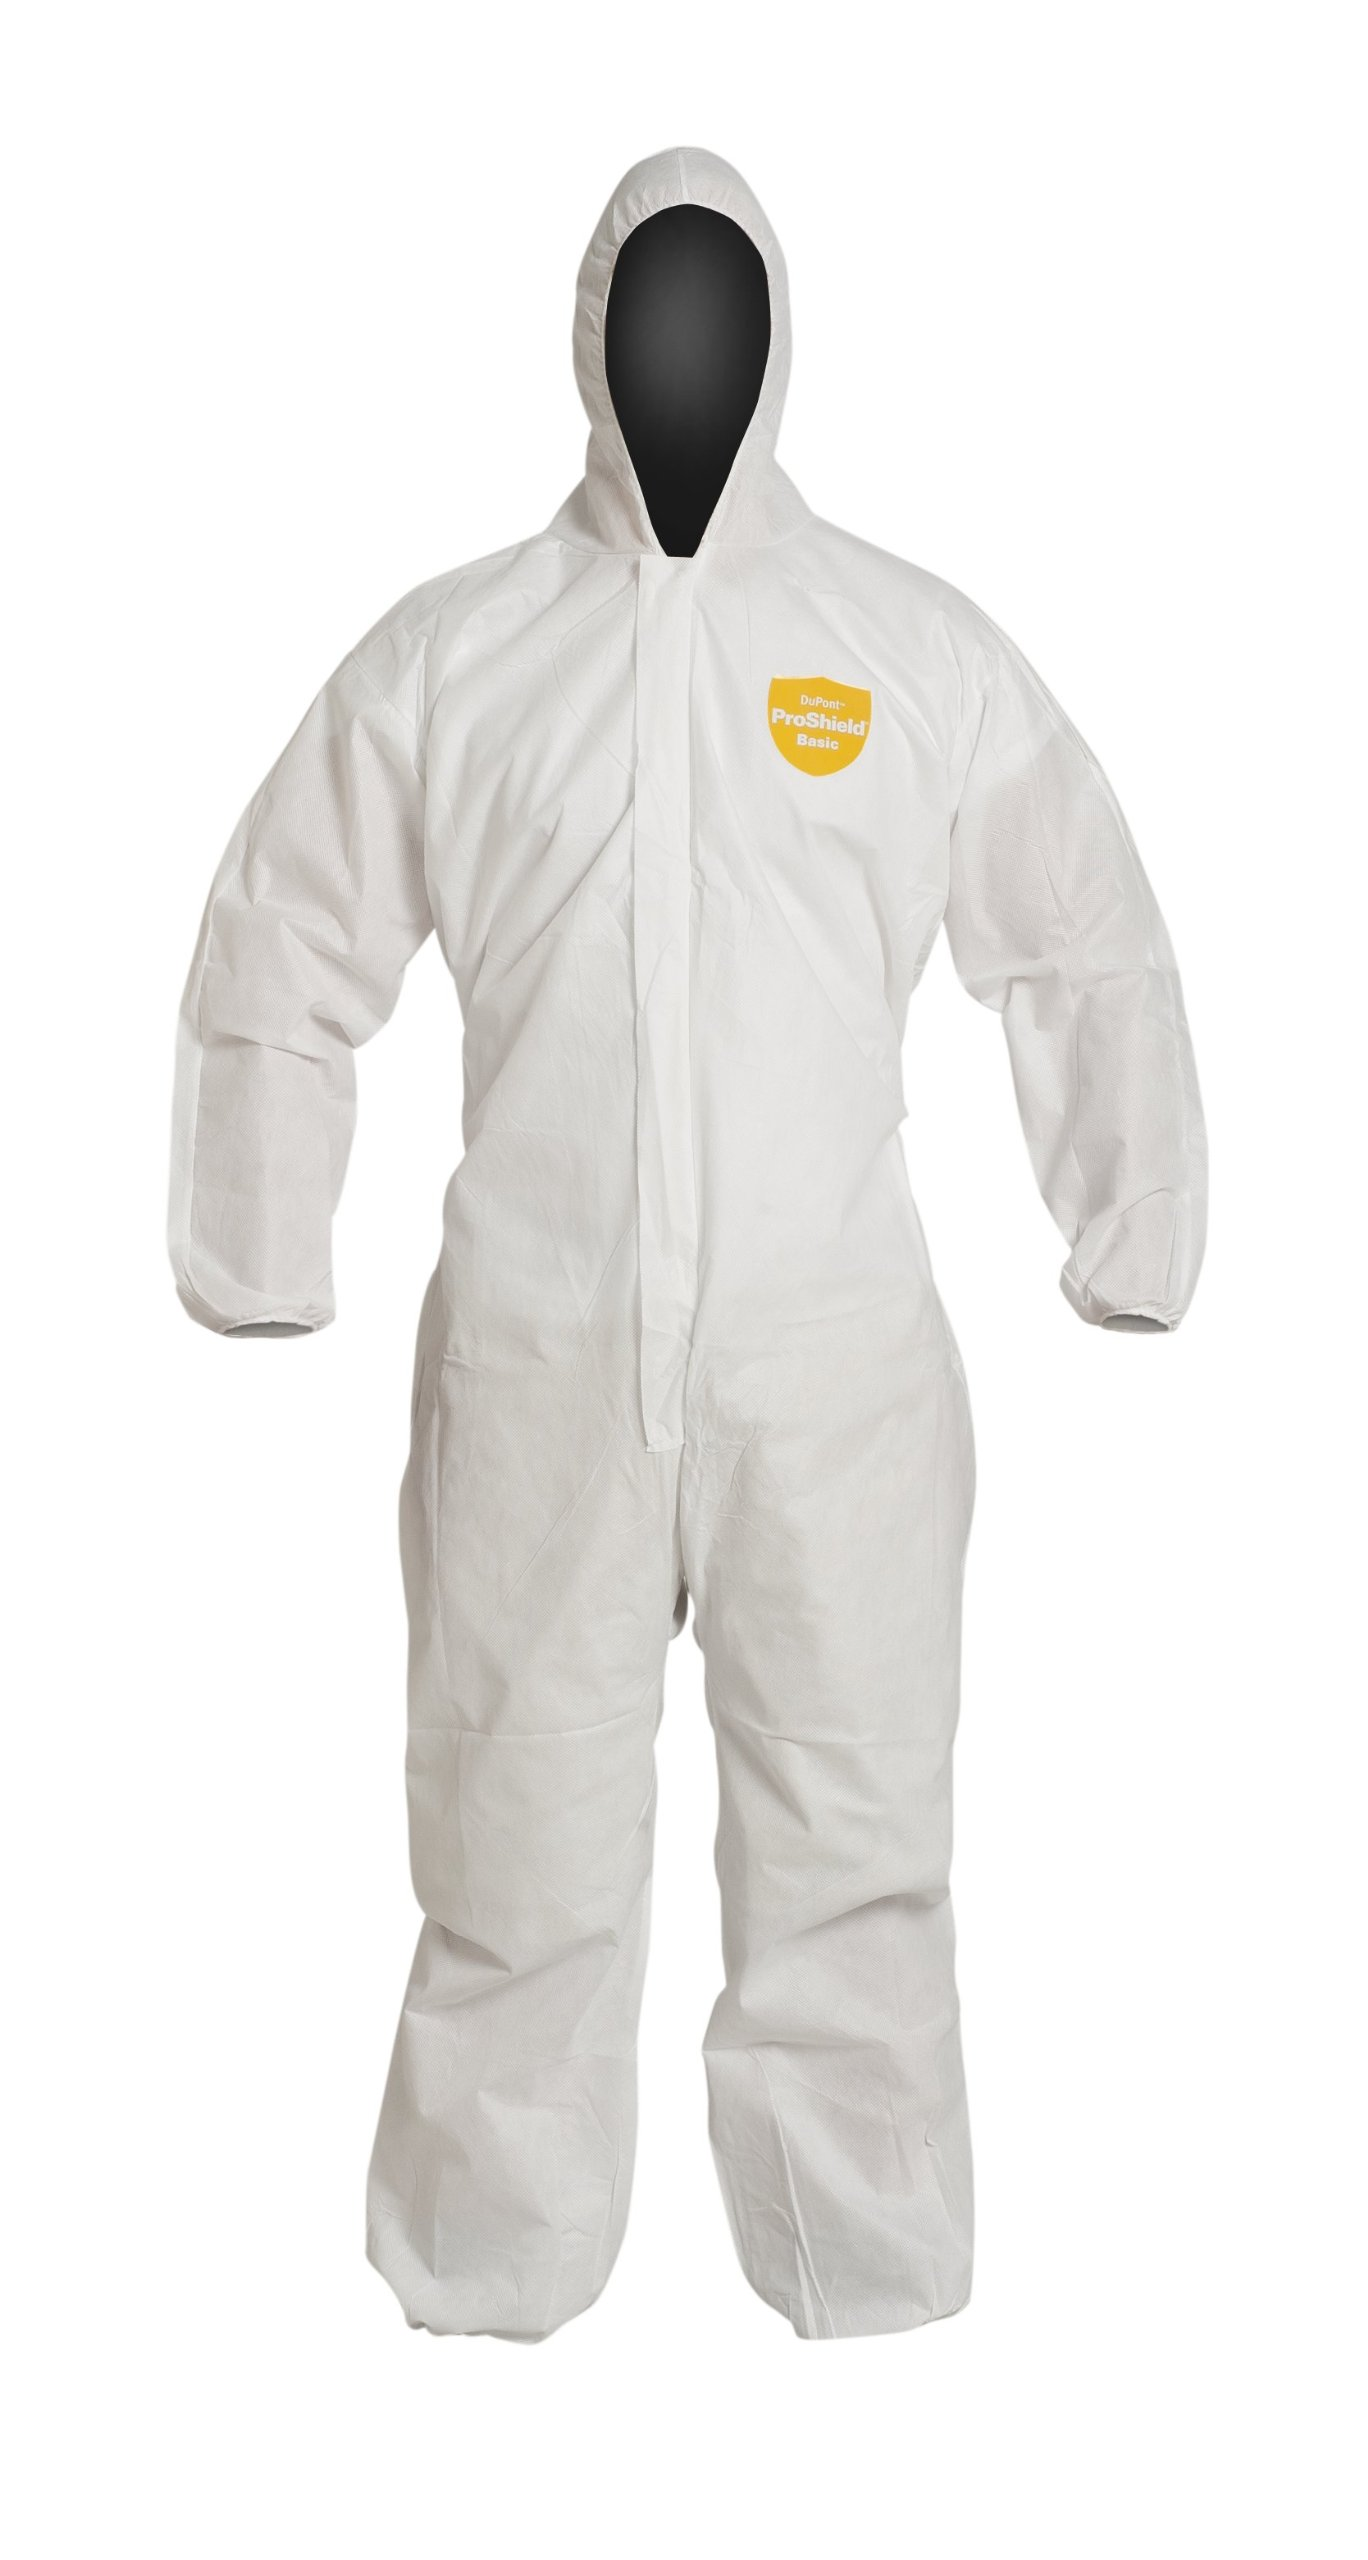 DuPont ProShield 10 PB127S Disposable Protective Coverall with Standard Fit Hood, Elastic Cuff and Ankles, White, X-Large (Pack of 25)